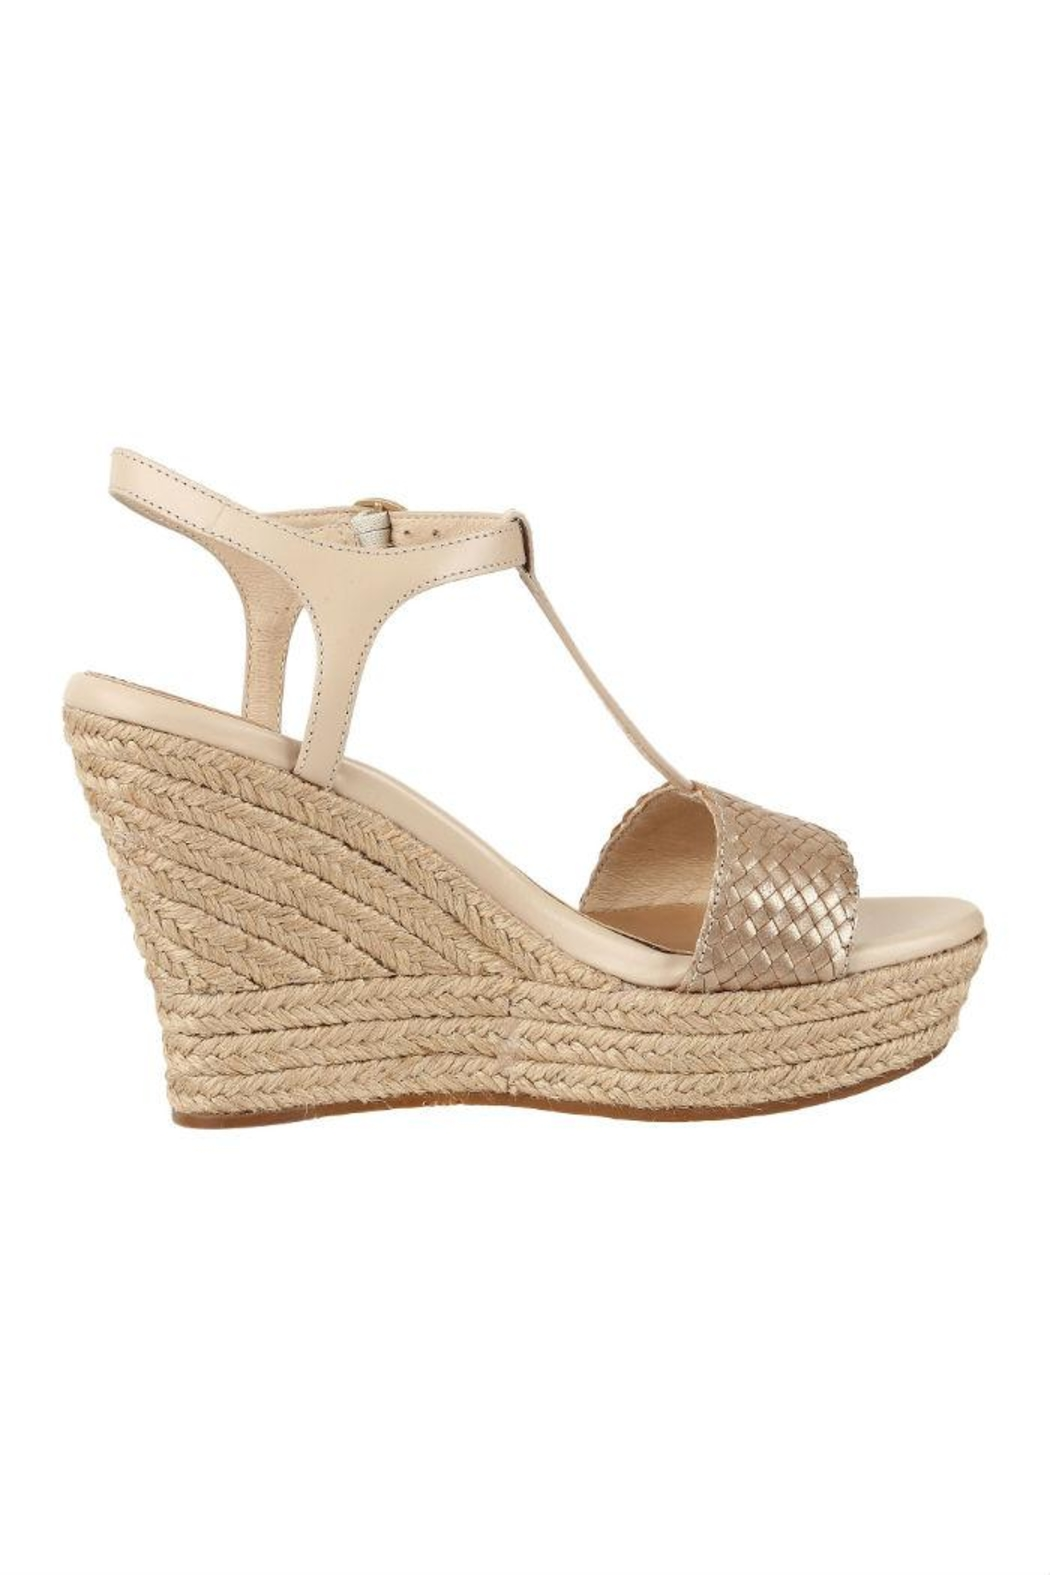 Ugg Australia Champagne Heeled Wedge Sandals From Montreal